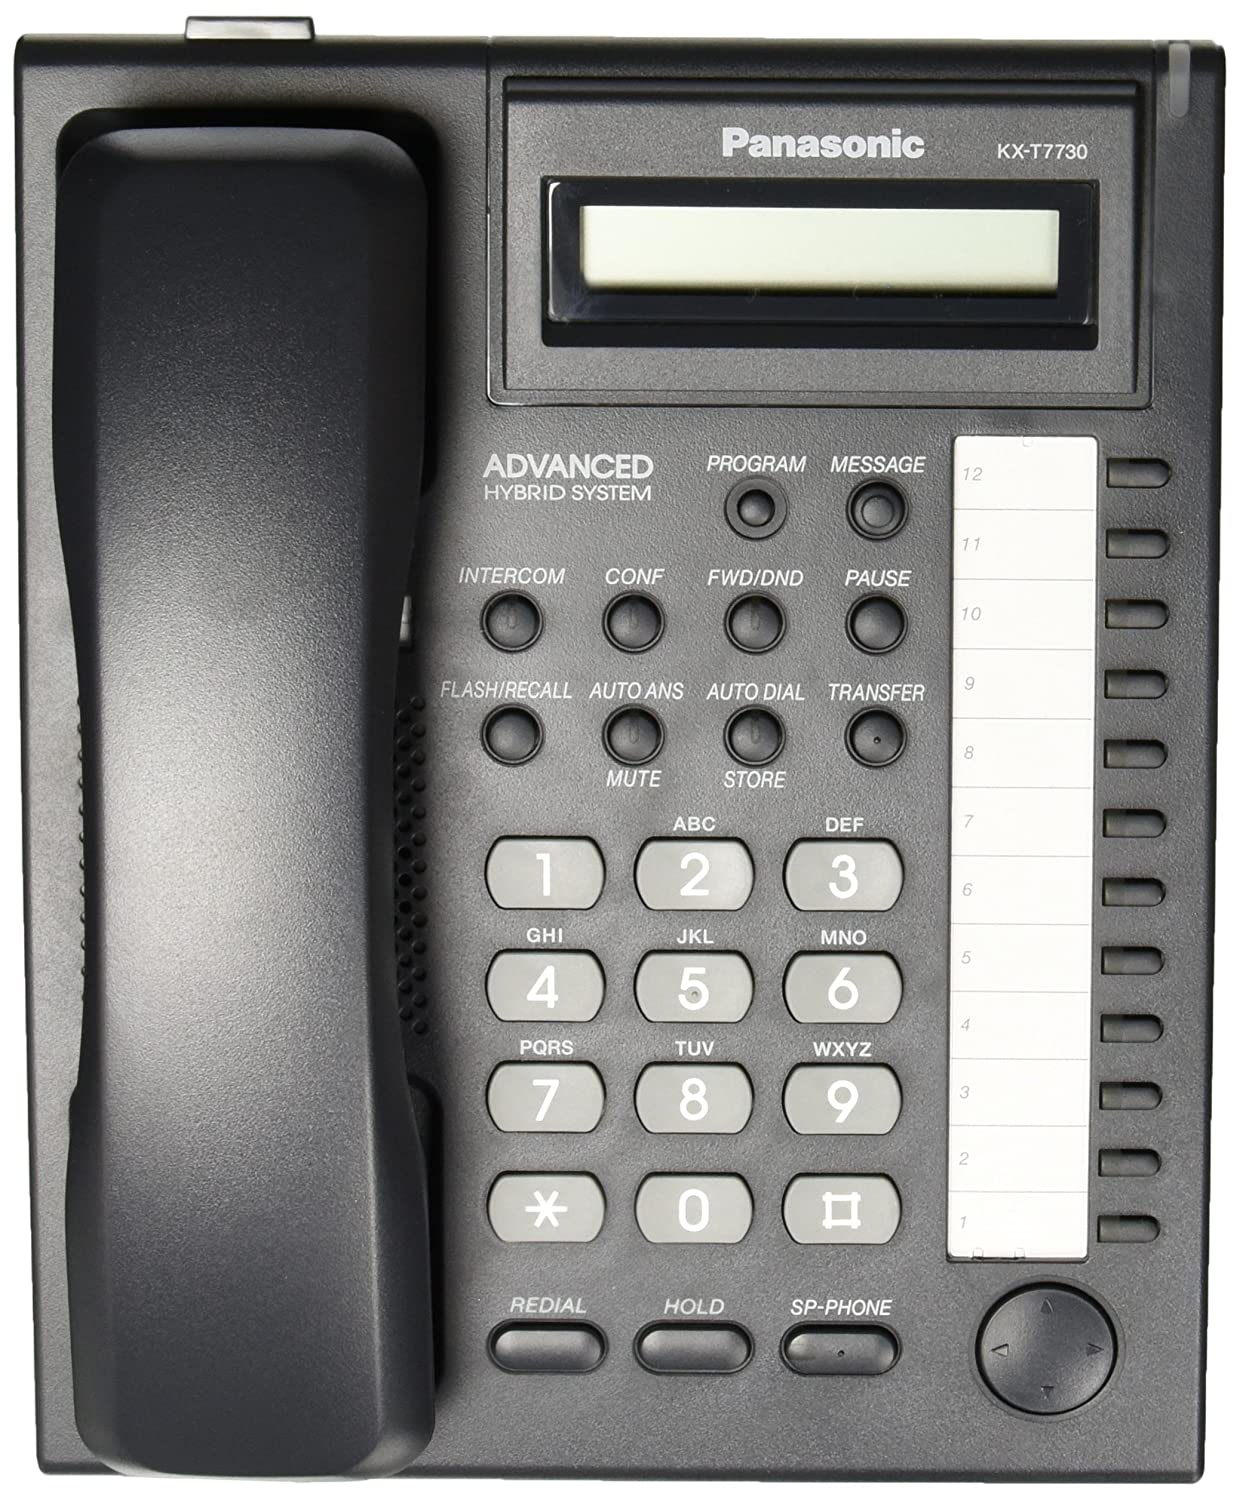 Amazon.com : Panasonic KX-T7730 Telephone Black : Corded Telephones :  Electronics